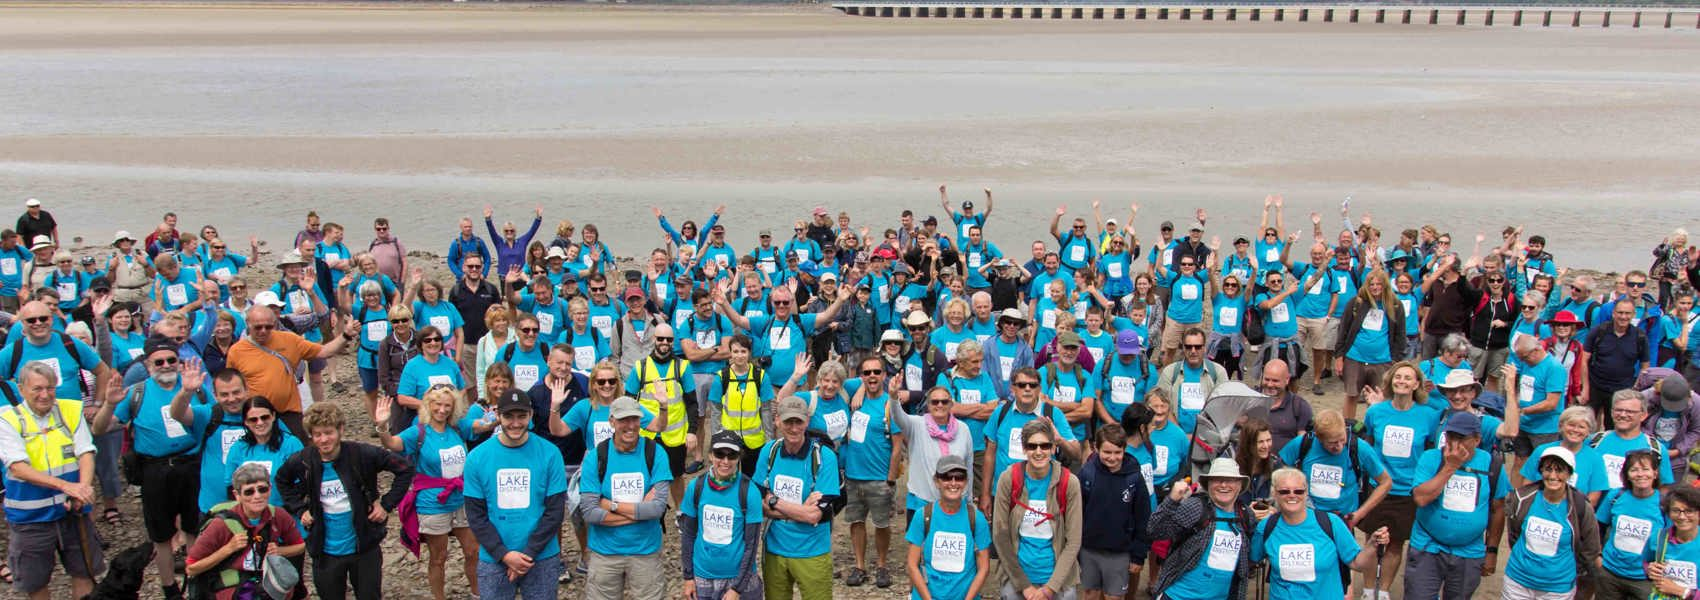 Record fundraising for local charity's Morecambe Bay Walk